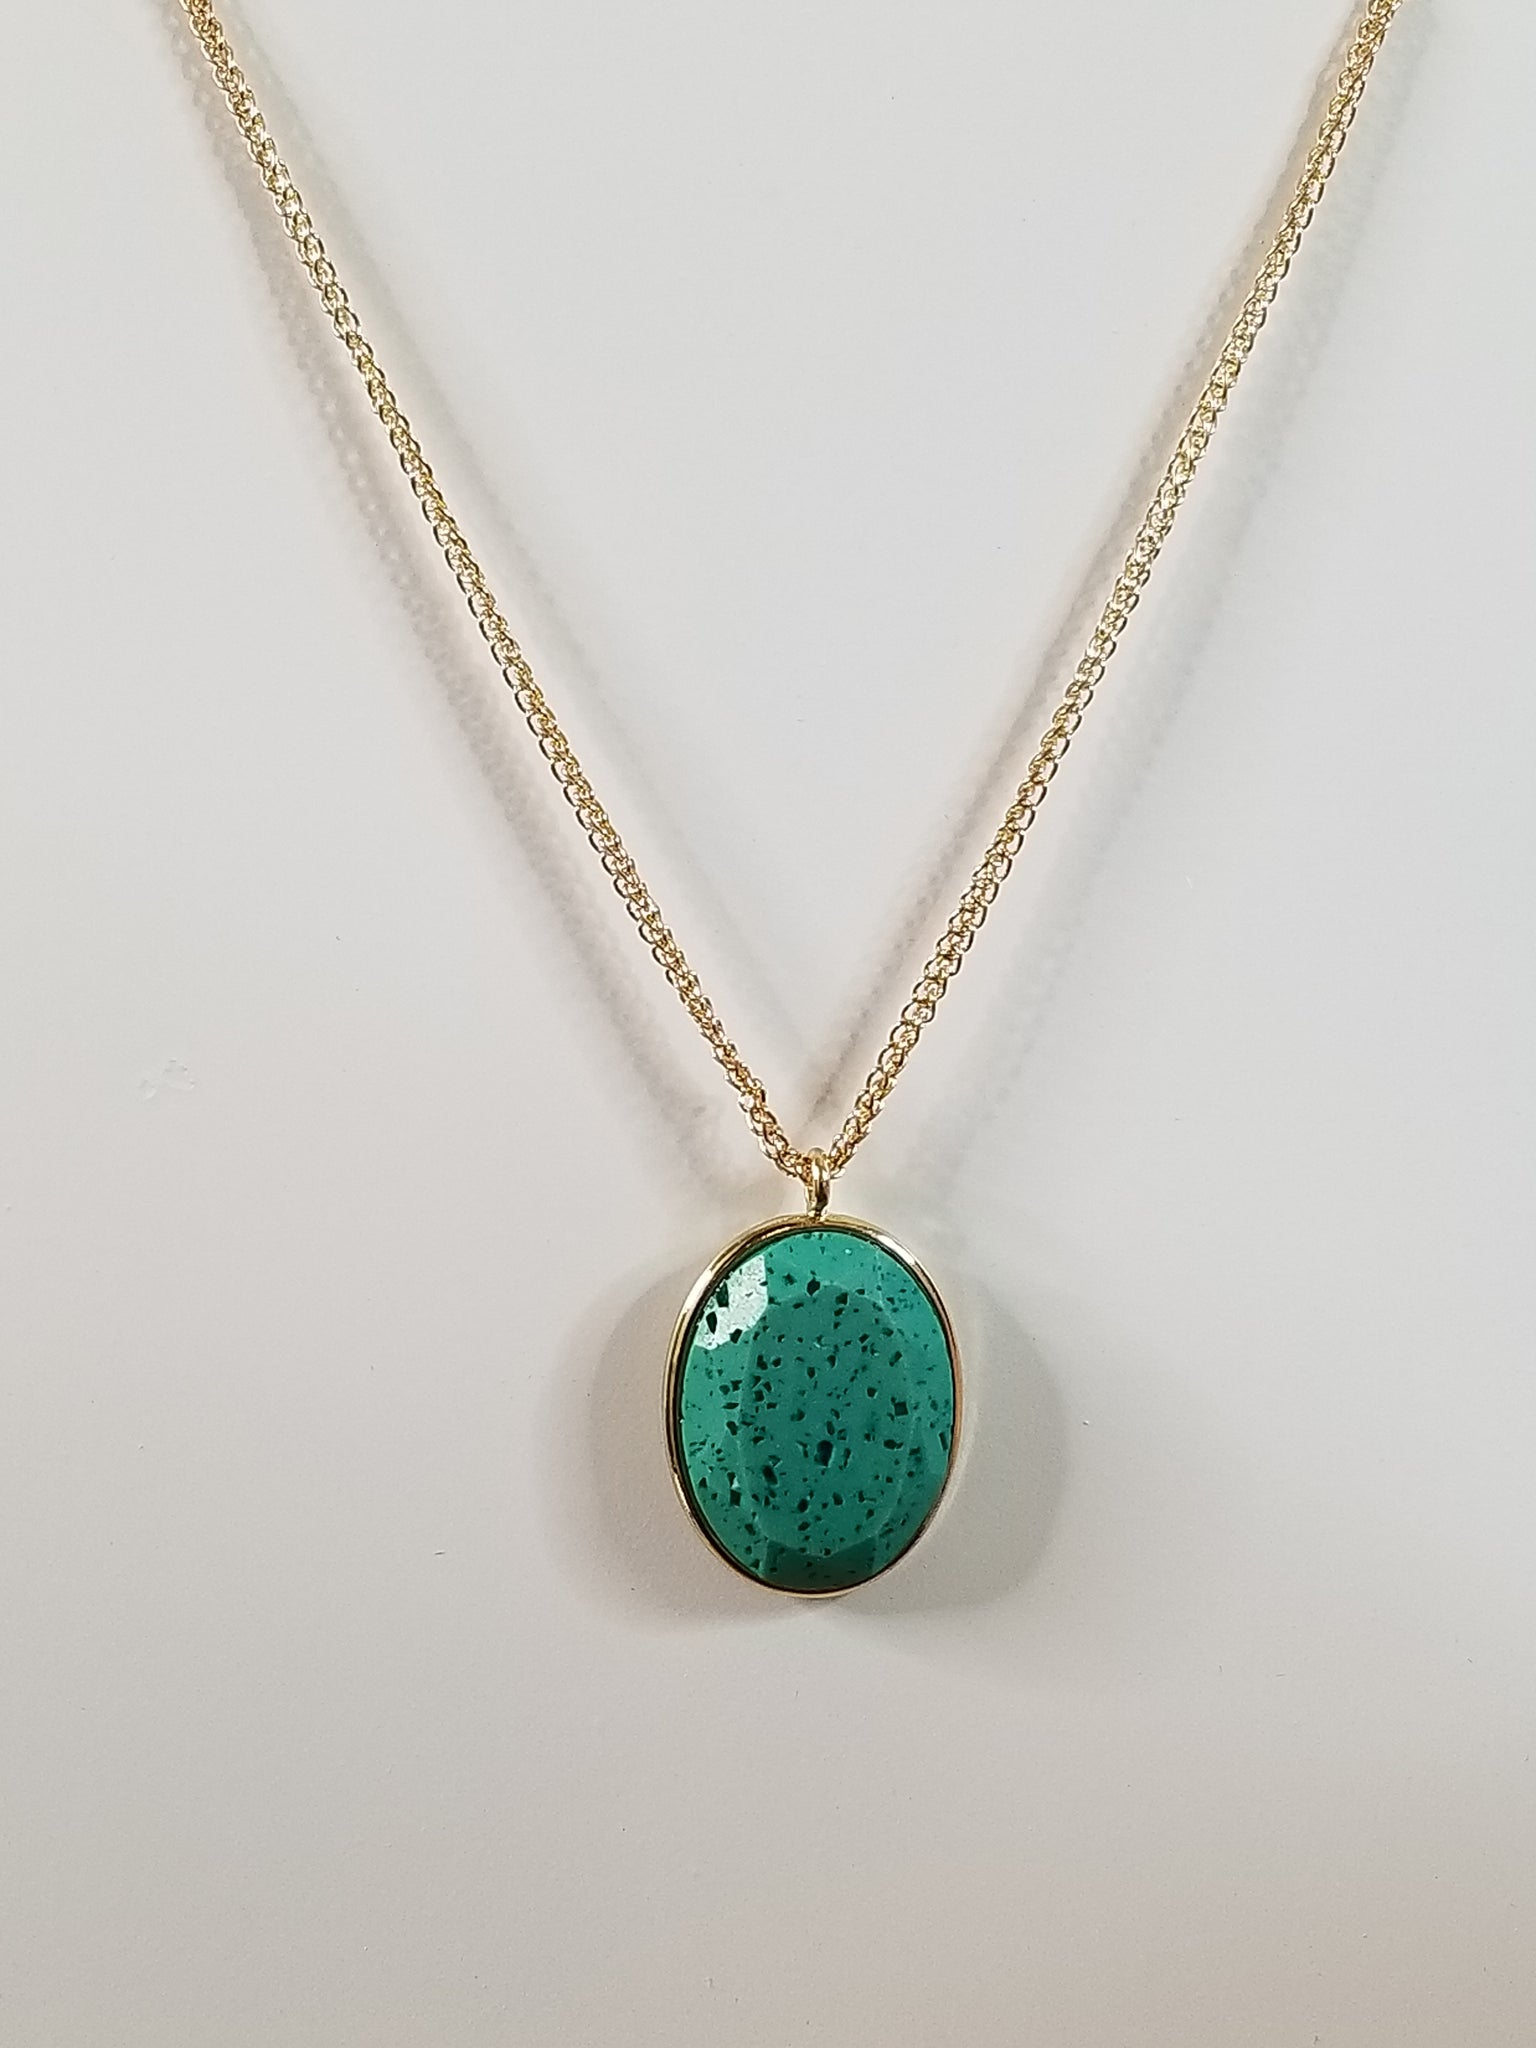 Scarlett - Turquoise Necklace